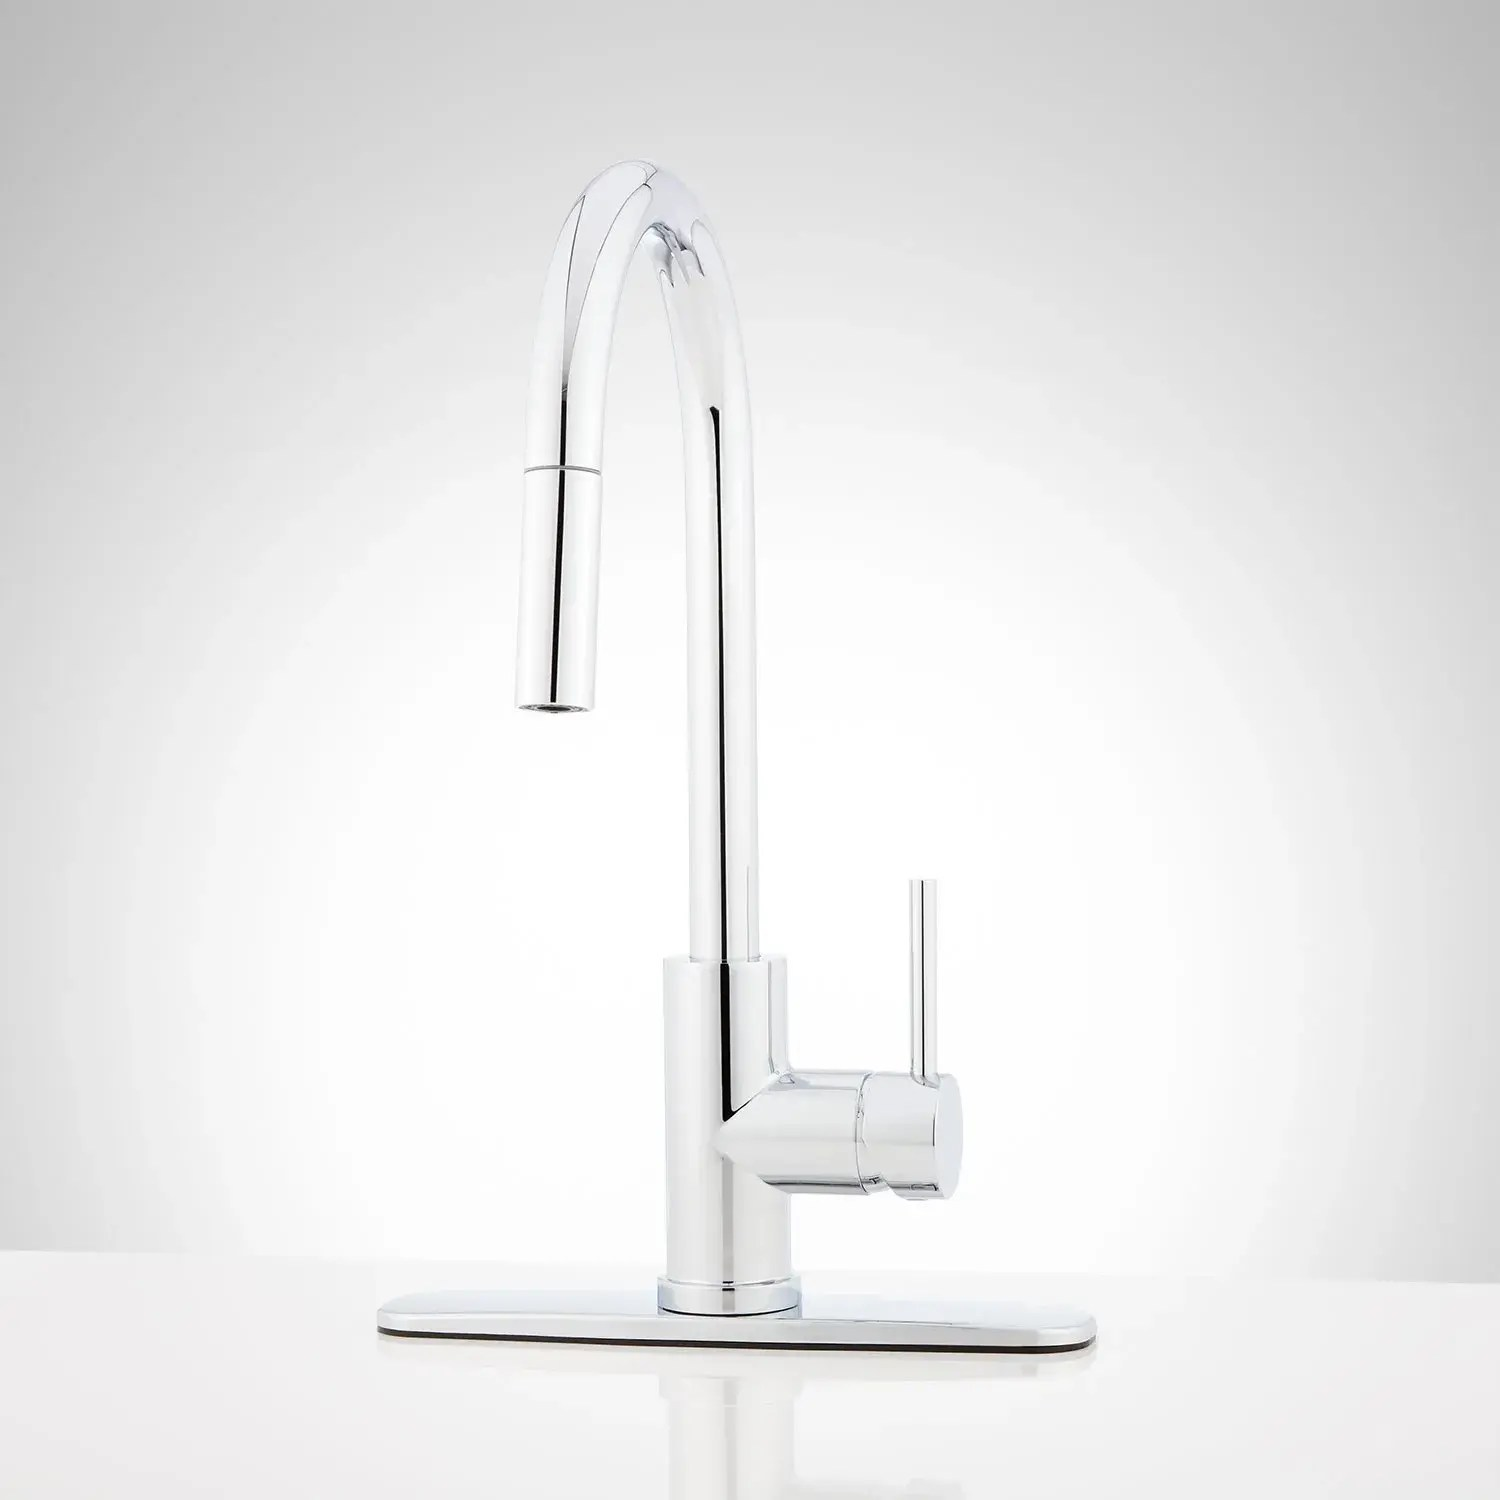 ravenel single hole pull down kitchen faucet with deck plate